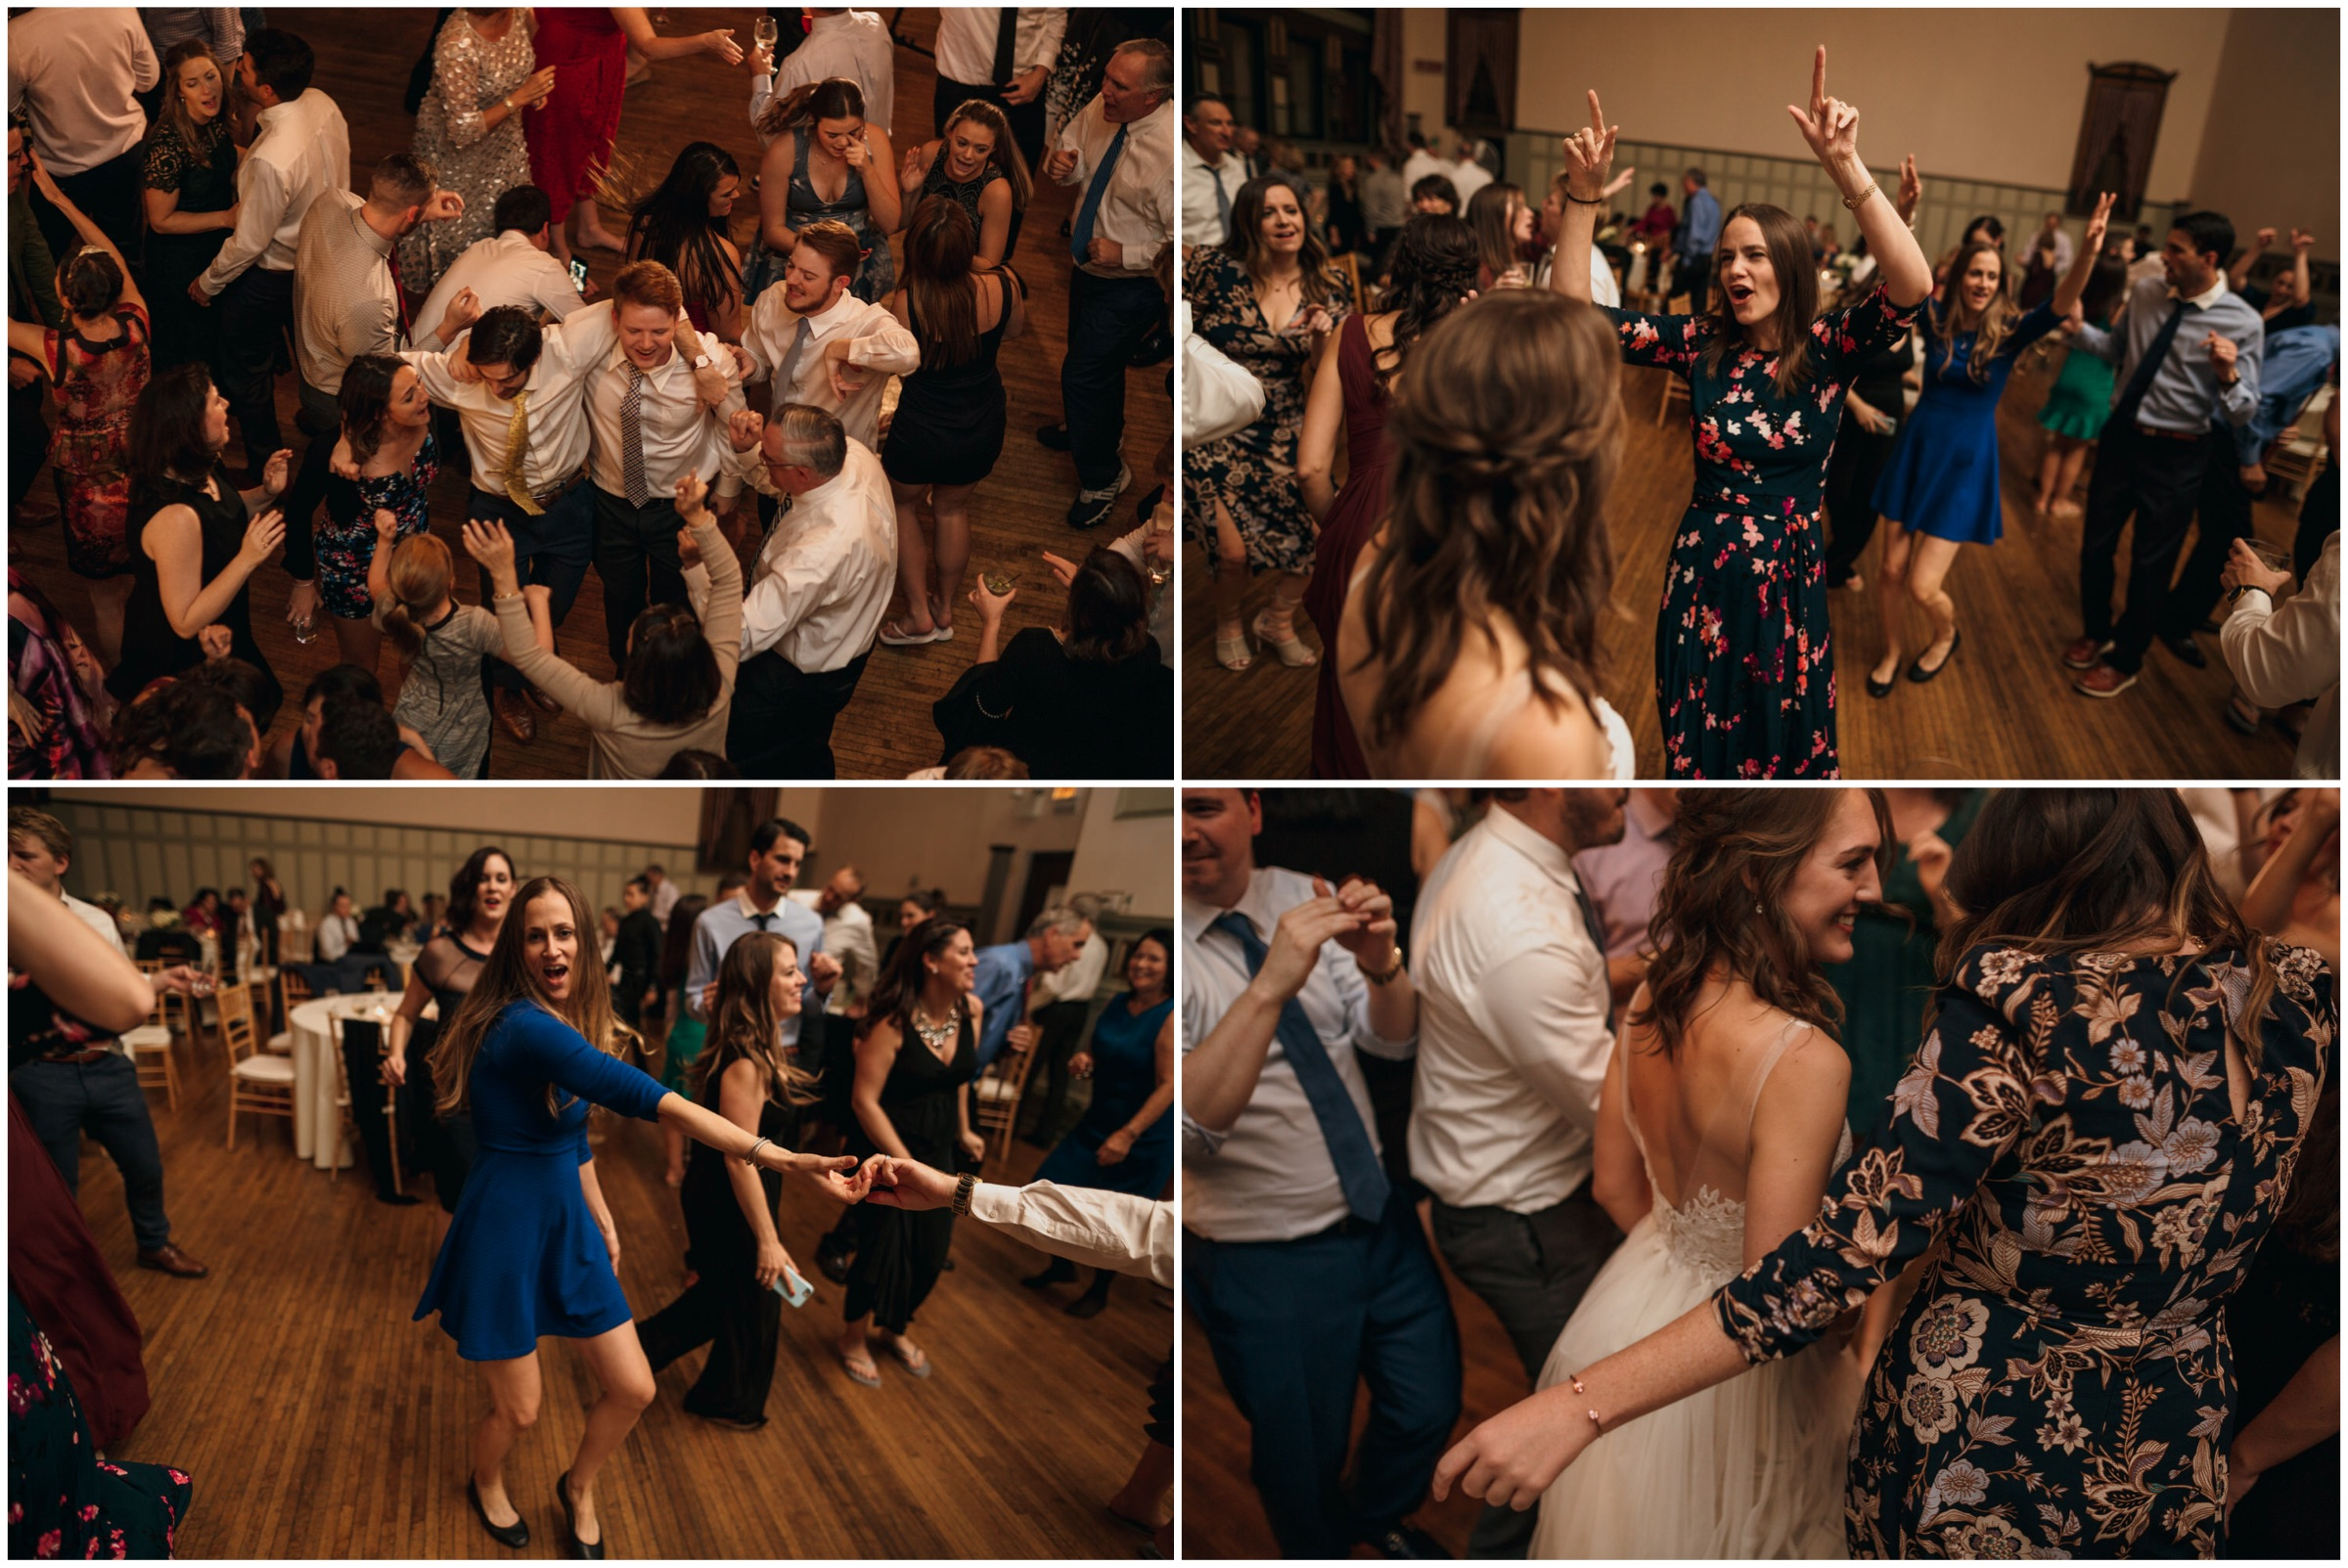 dancing germania place wedding.jpg